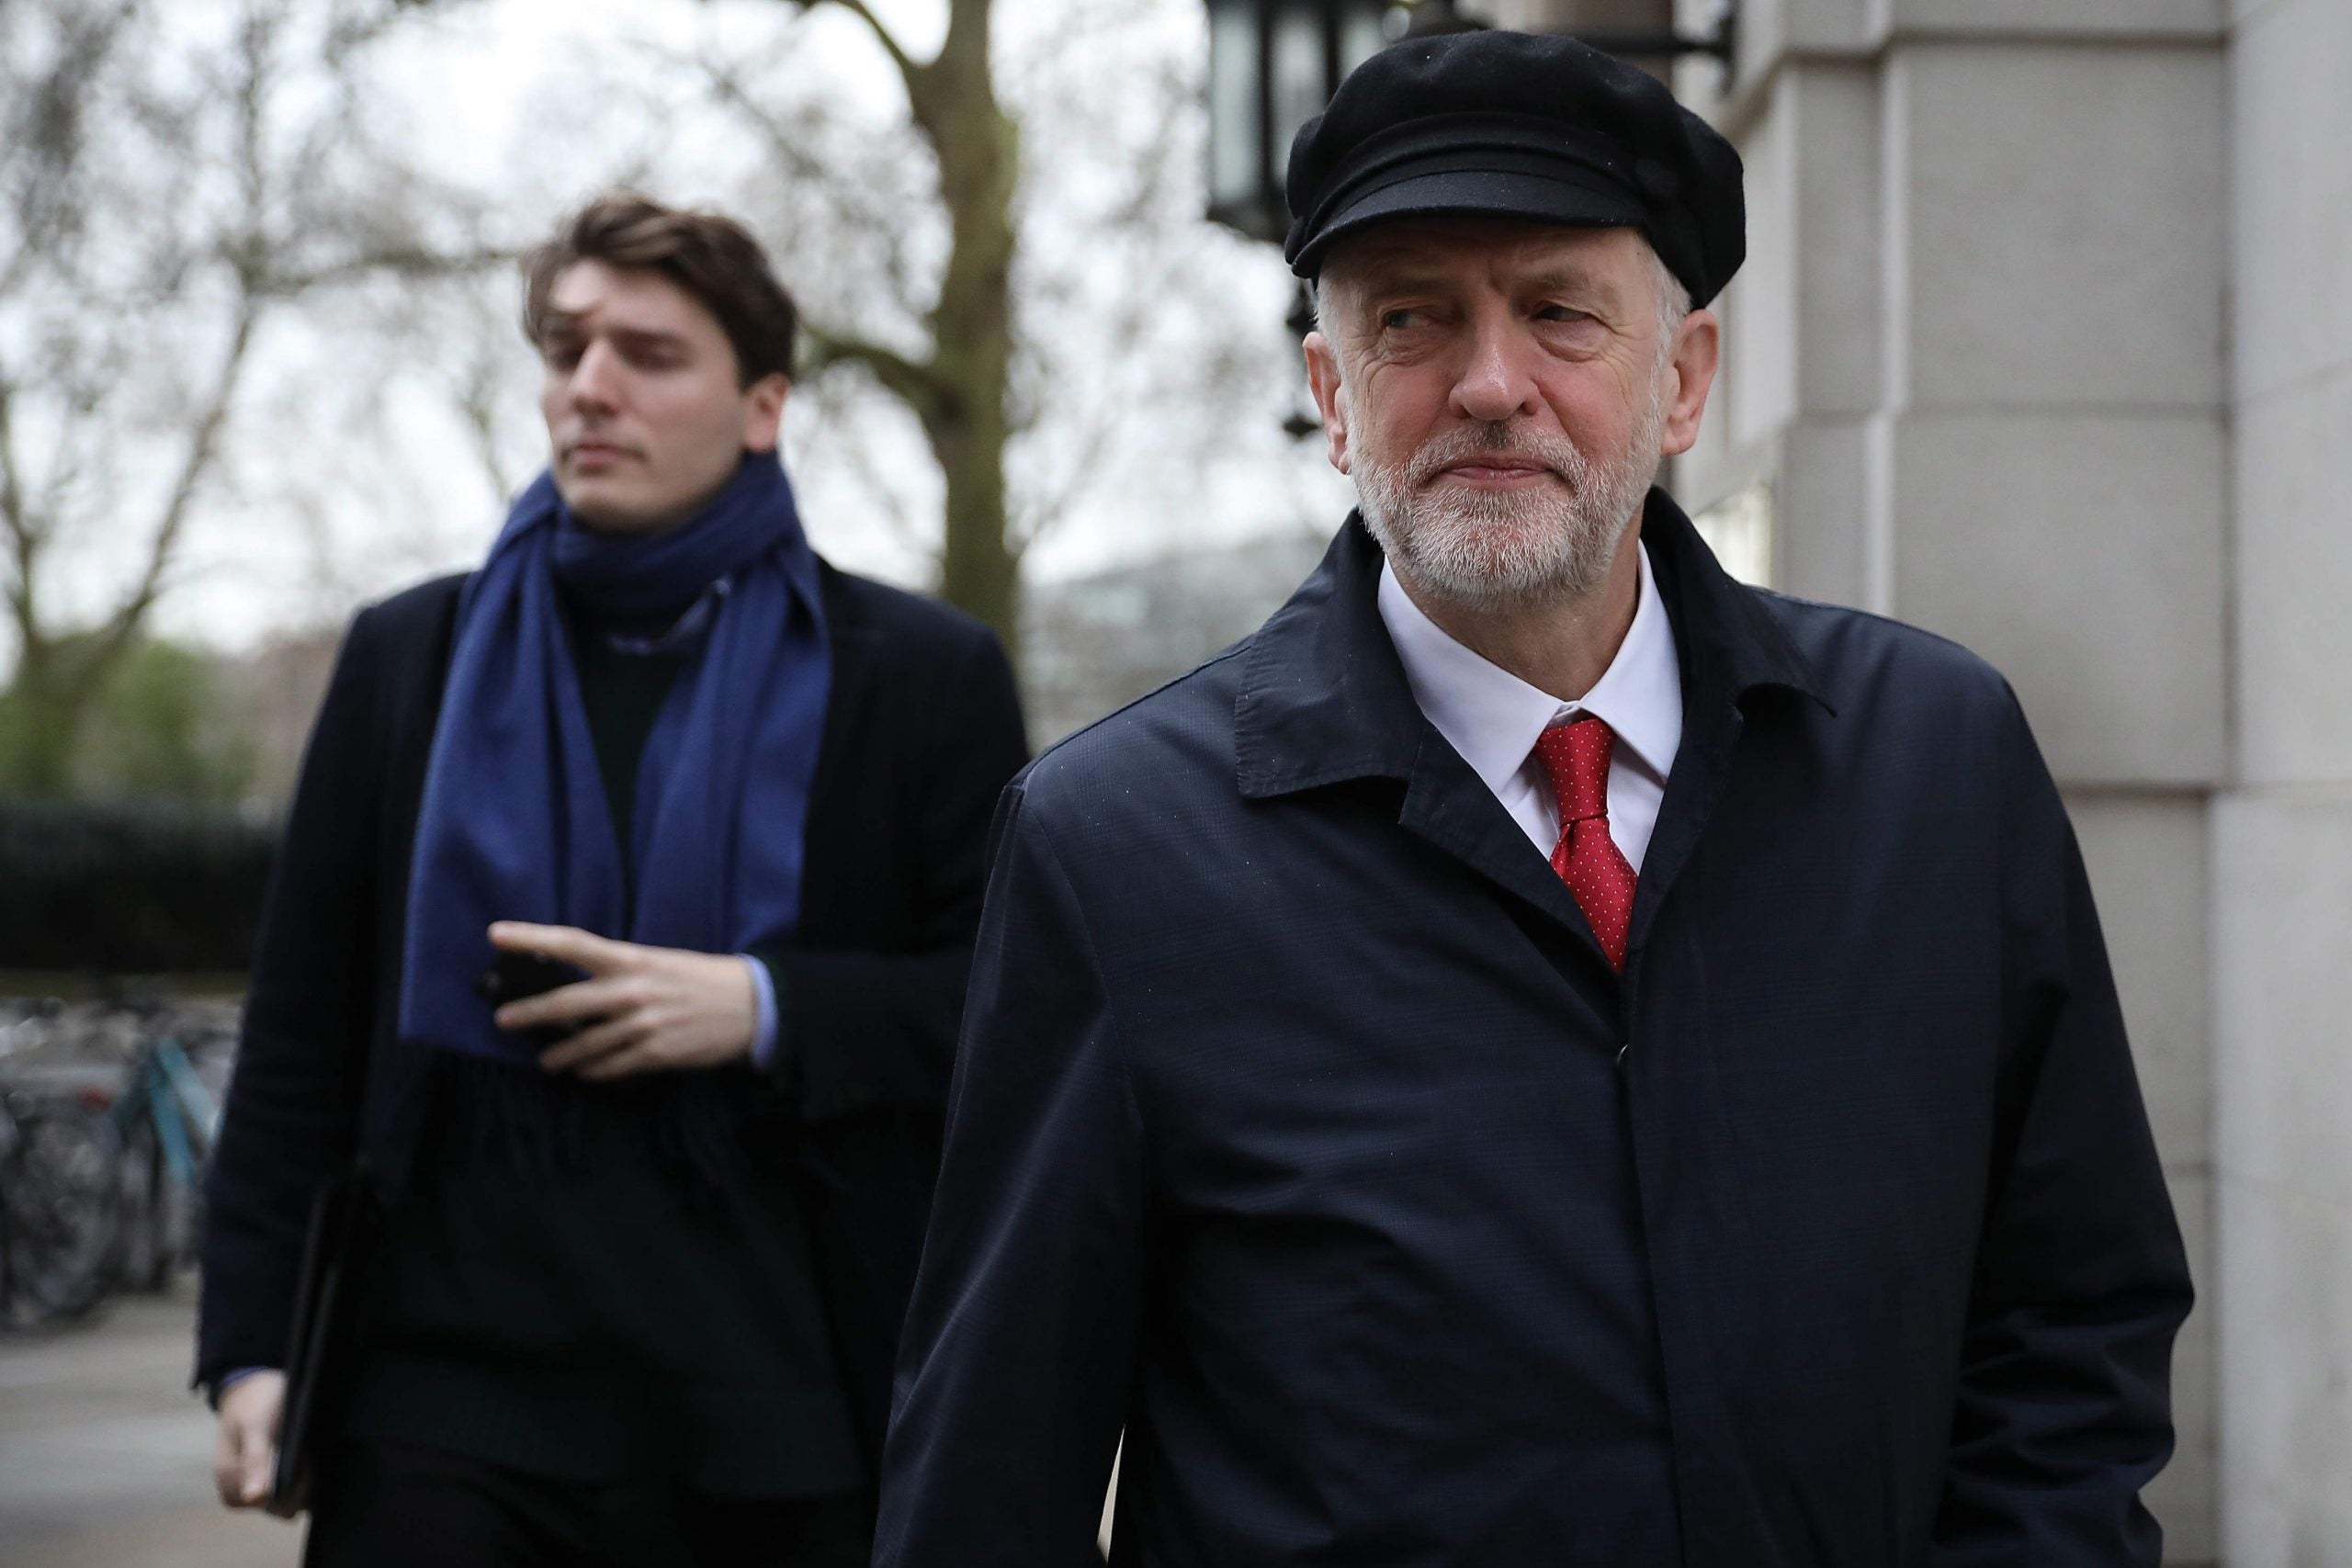 Jeremy Corbyn's internal critics have a compelling diagnosis, but they don't have a cure